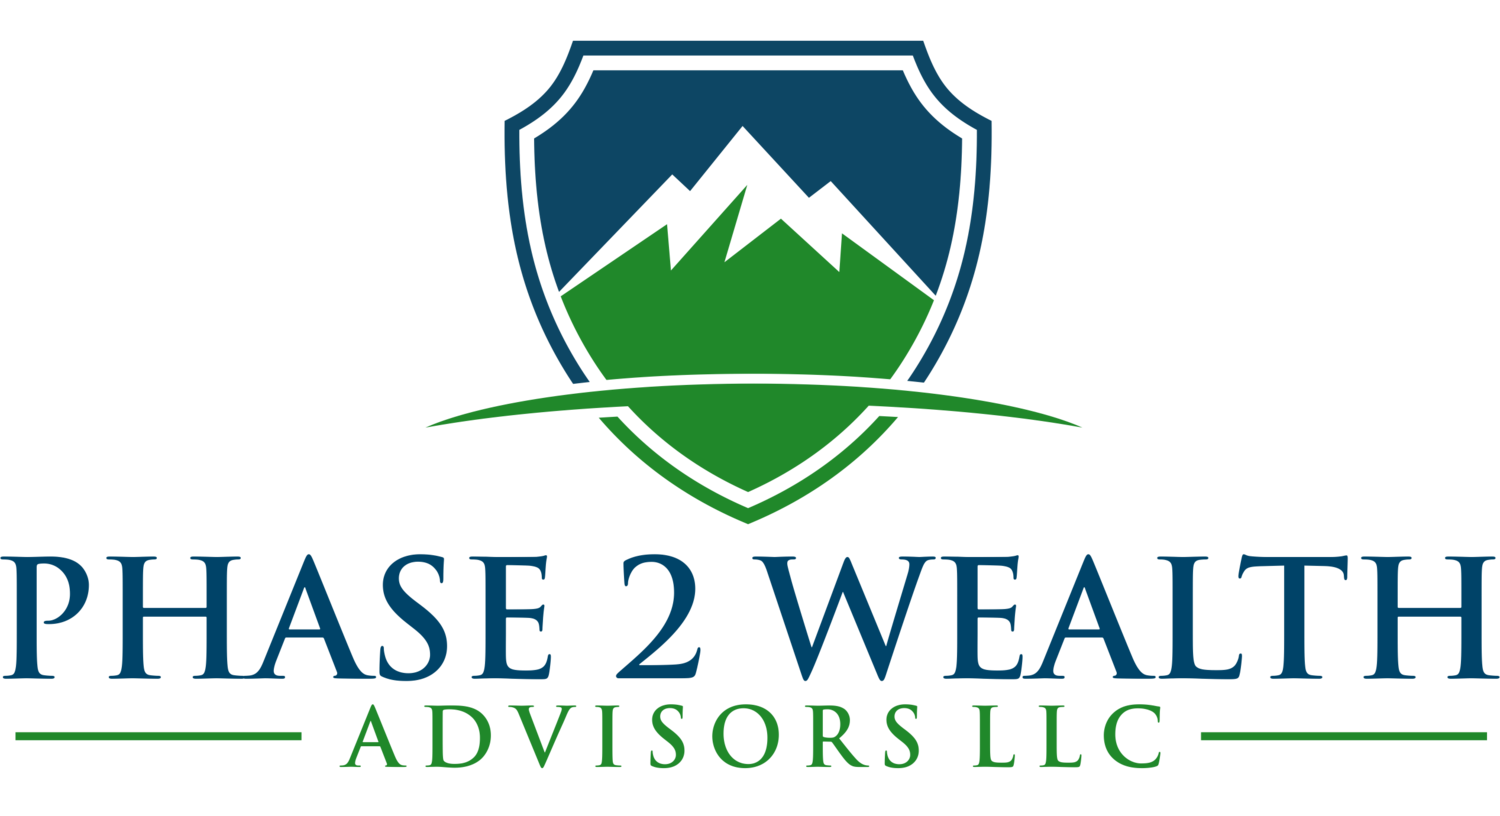 Phase 2 Wealth Advisors